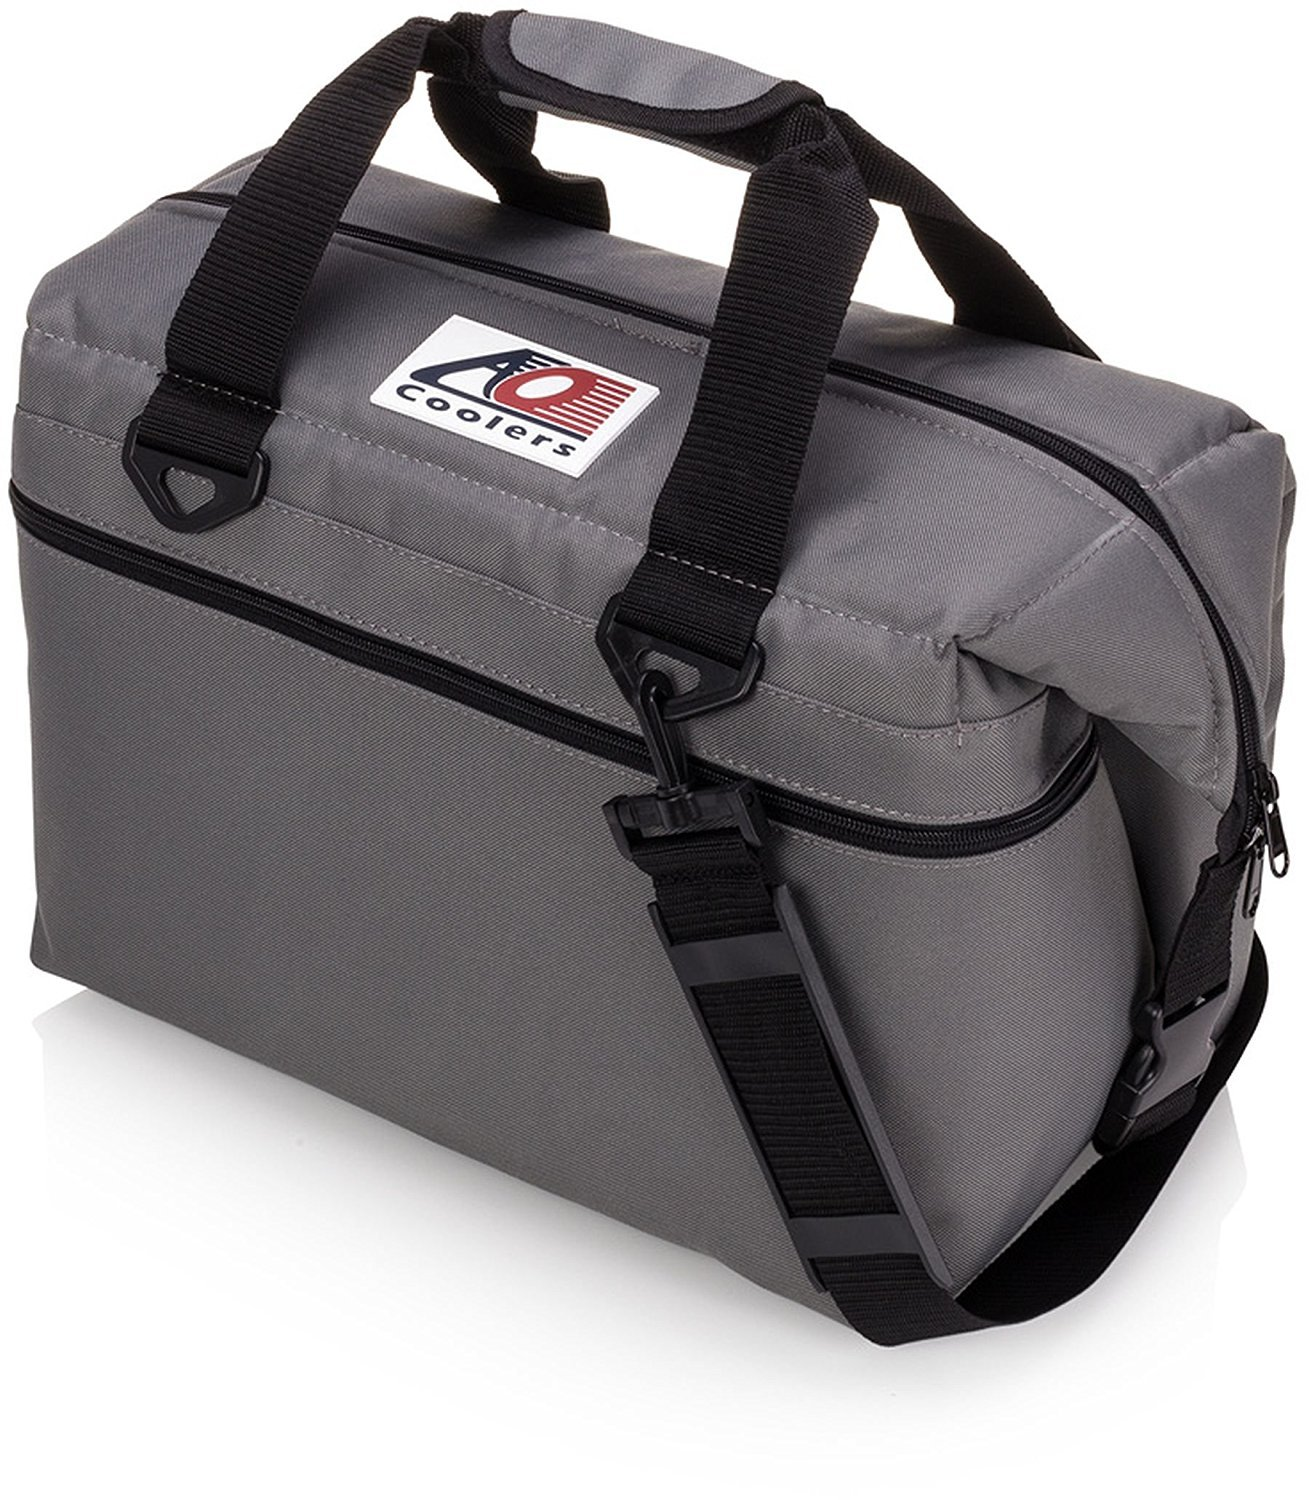 AO Coolers Canvas Soft Cooler with High-Density Insulation, Charcoal, 36-Can